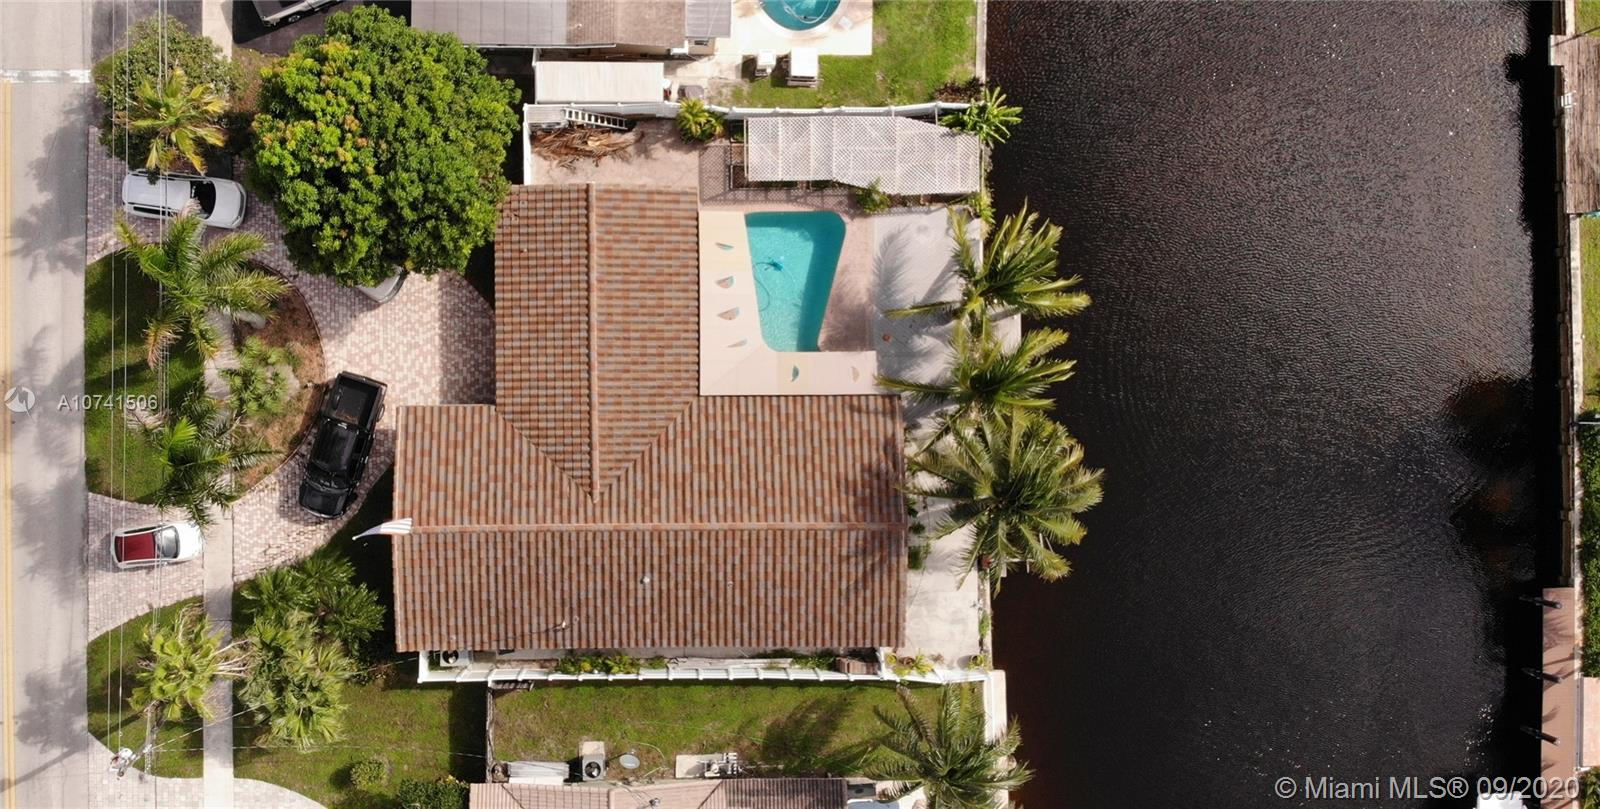 PRICED BELOW APPRAISED VALUE (appraisal done 7/20) NEW AC 6/2020 Make this your home w/some updates & your personal touch. Walk to Pine Crest school. Tile roof is approx 6 yrs old & stucco soffit, LED exterior lighting. Wired for generator, impact doors & sliders, clear hurricane panels. Enjoy ocean access waterfront w/private dock. Relax in your salt water pool. Tankless water heater. Travertine flooring in living areas/kitchen. Kitchen has great island w/soft close drawers, granite, ss appliances, lots of cabinet space. Master bath redone w/Turkish marble & glass enclosed shower. 2nd bath features jacuzzi tub & separate shower.   1 car garage for your toys/car/storage. Mins from I95 & US1 for easy commute.